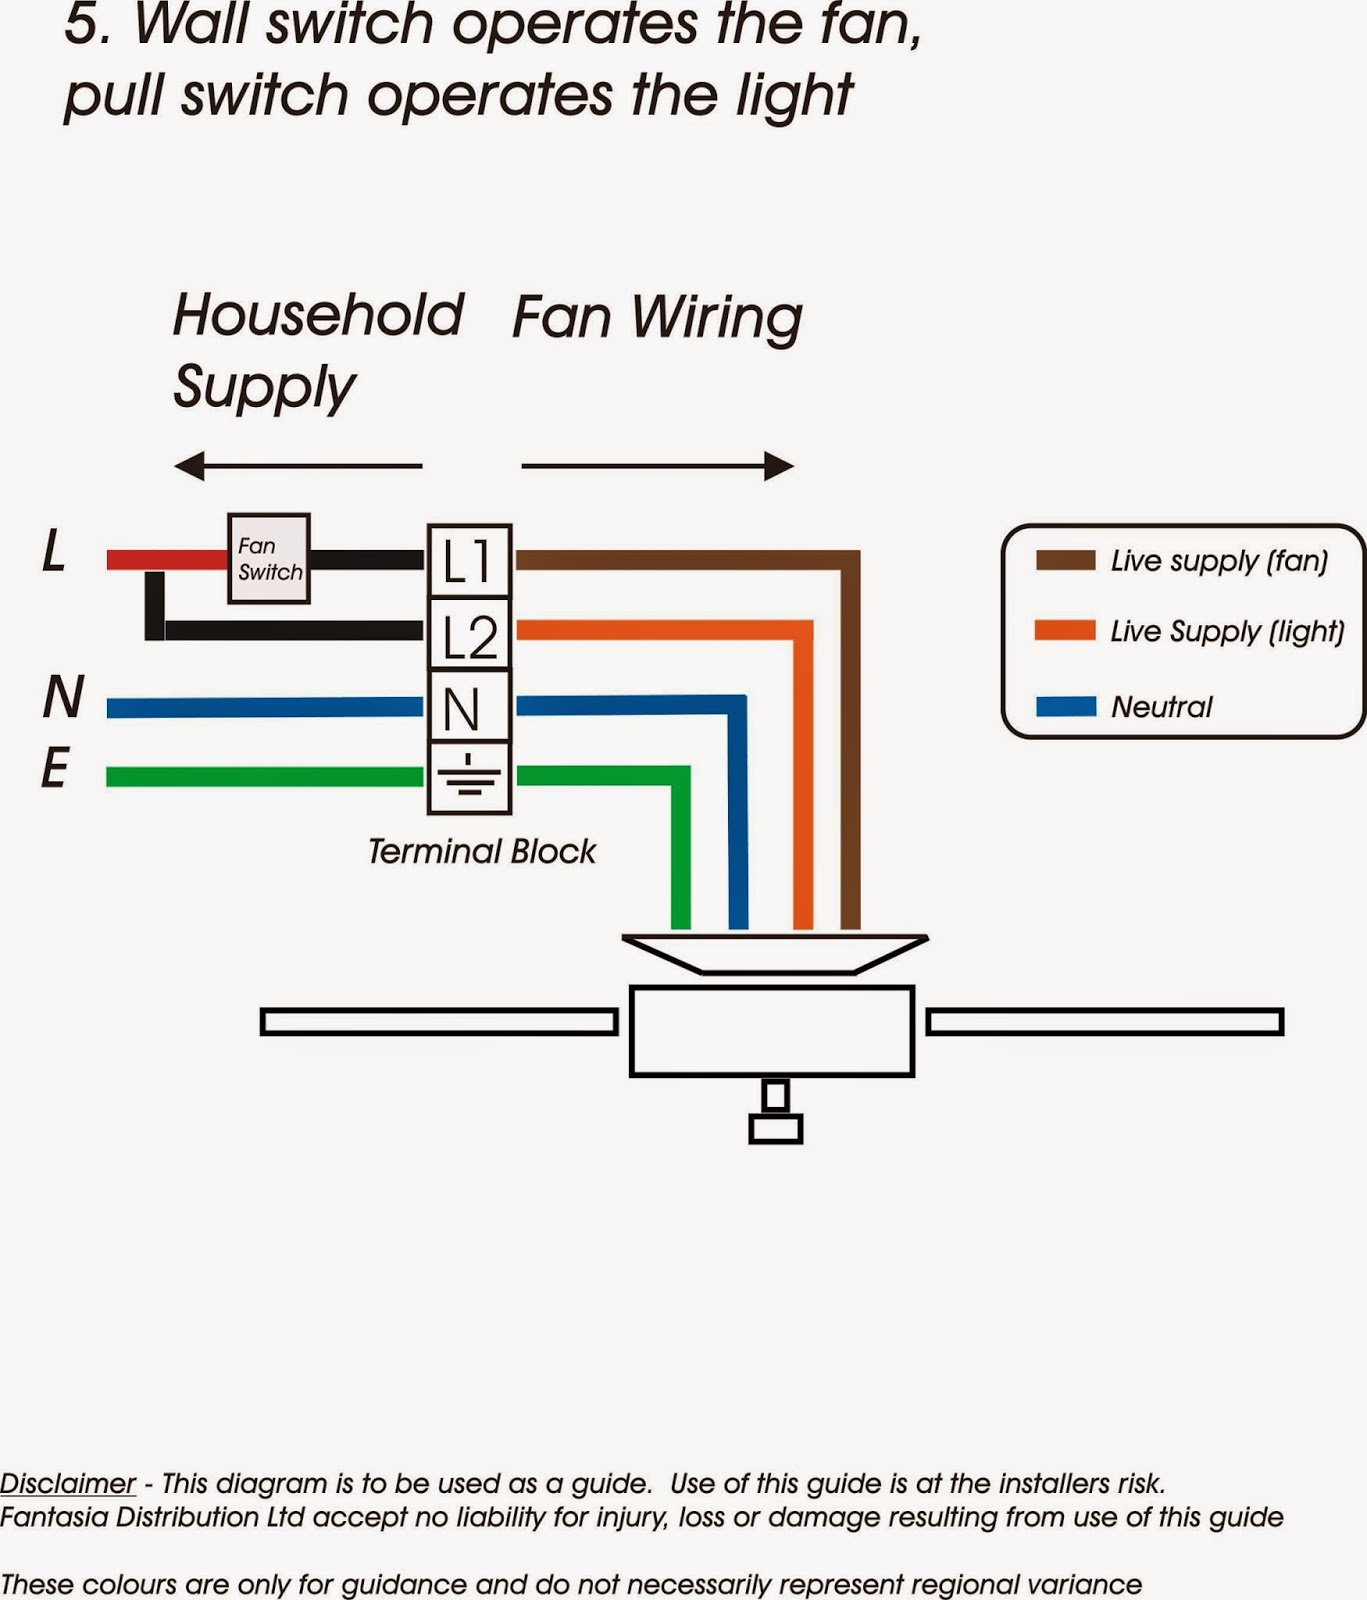 wiring diagram wall fan pull light electric work wiring diagram Arctic Cat Wiring Diagrams Online at bayanpartner.co